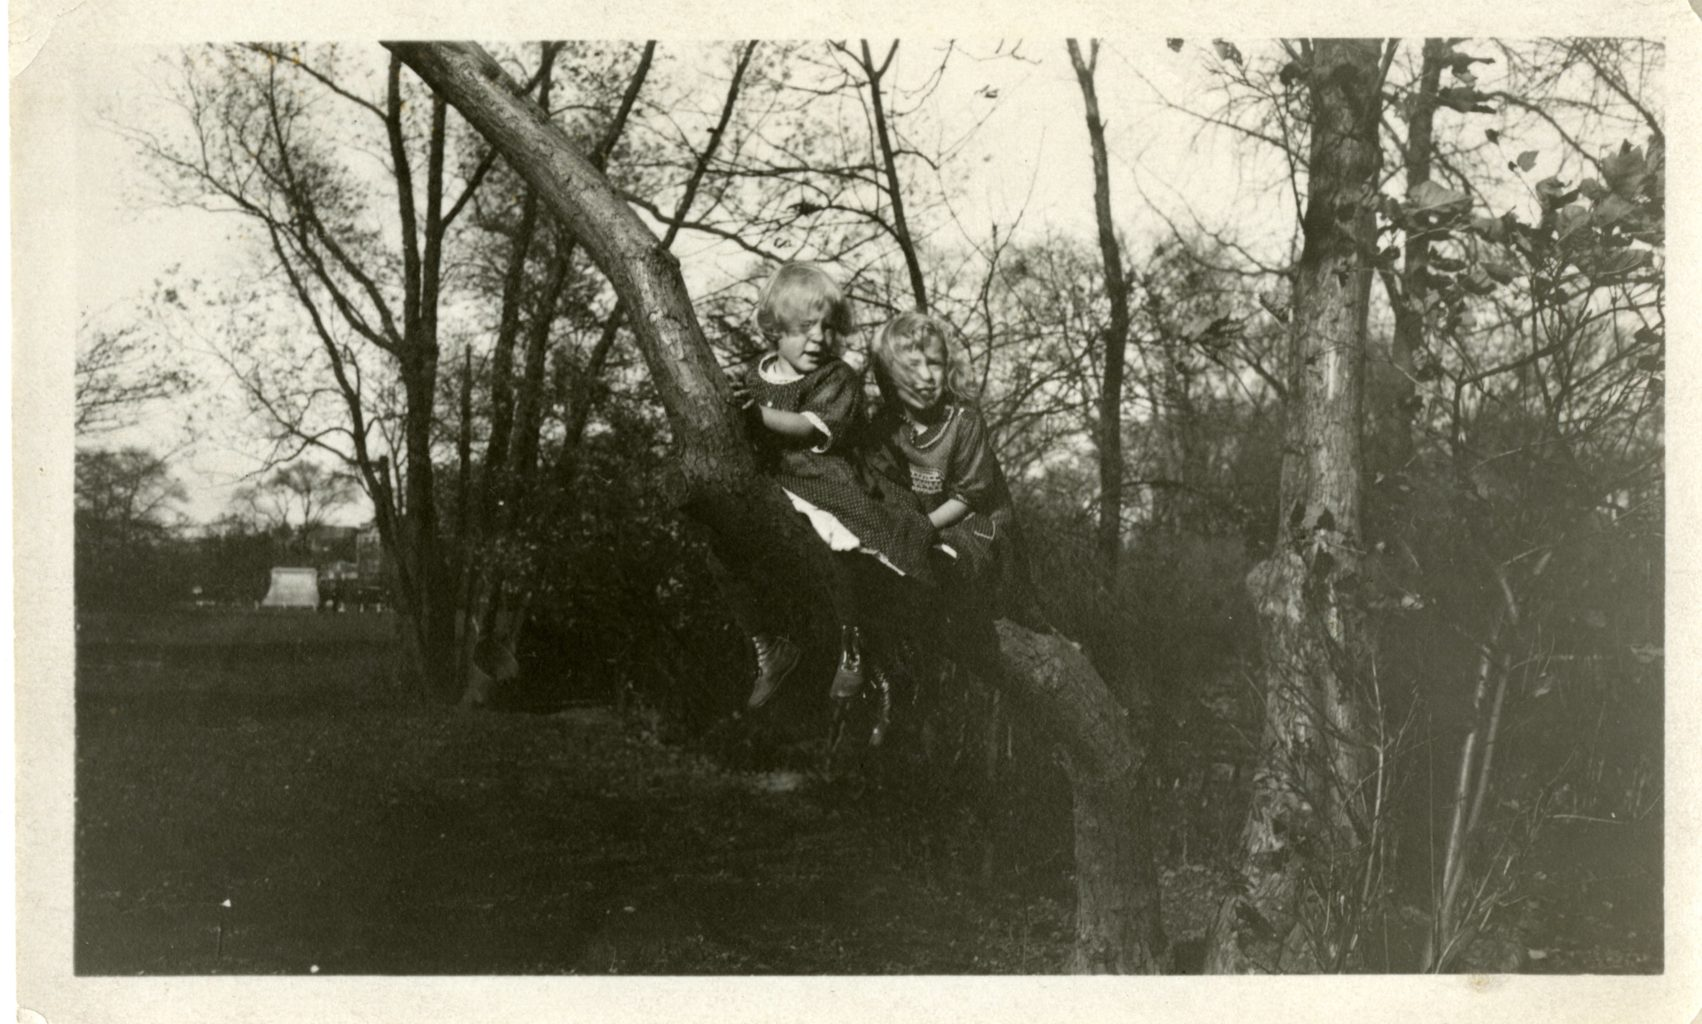 Two young girls sit on a branch of a tree.